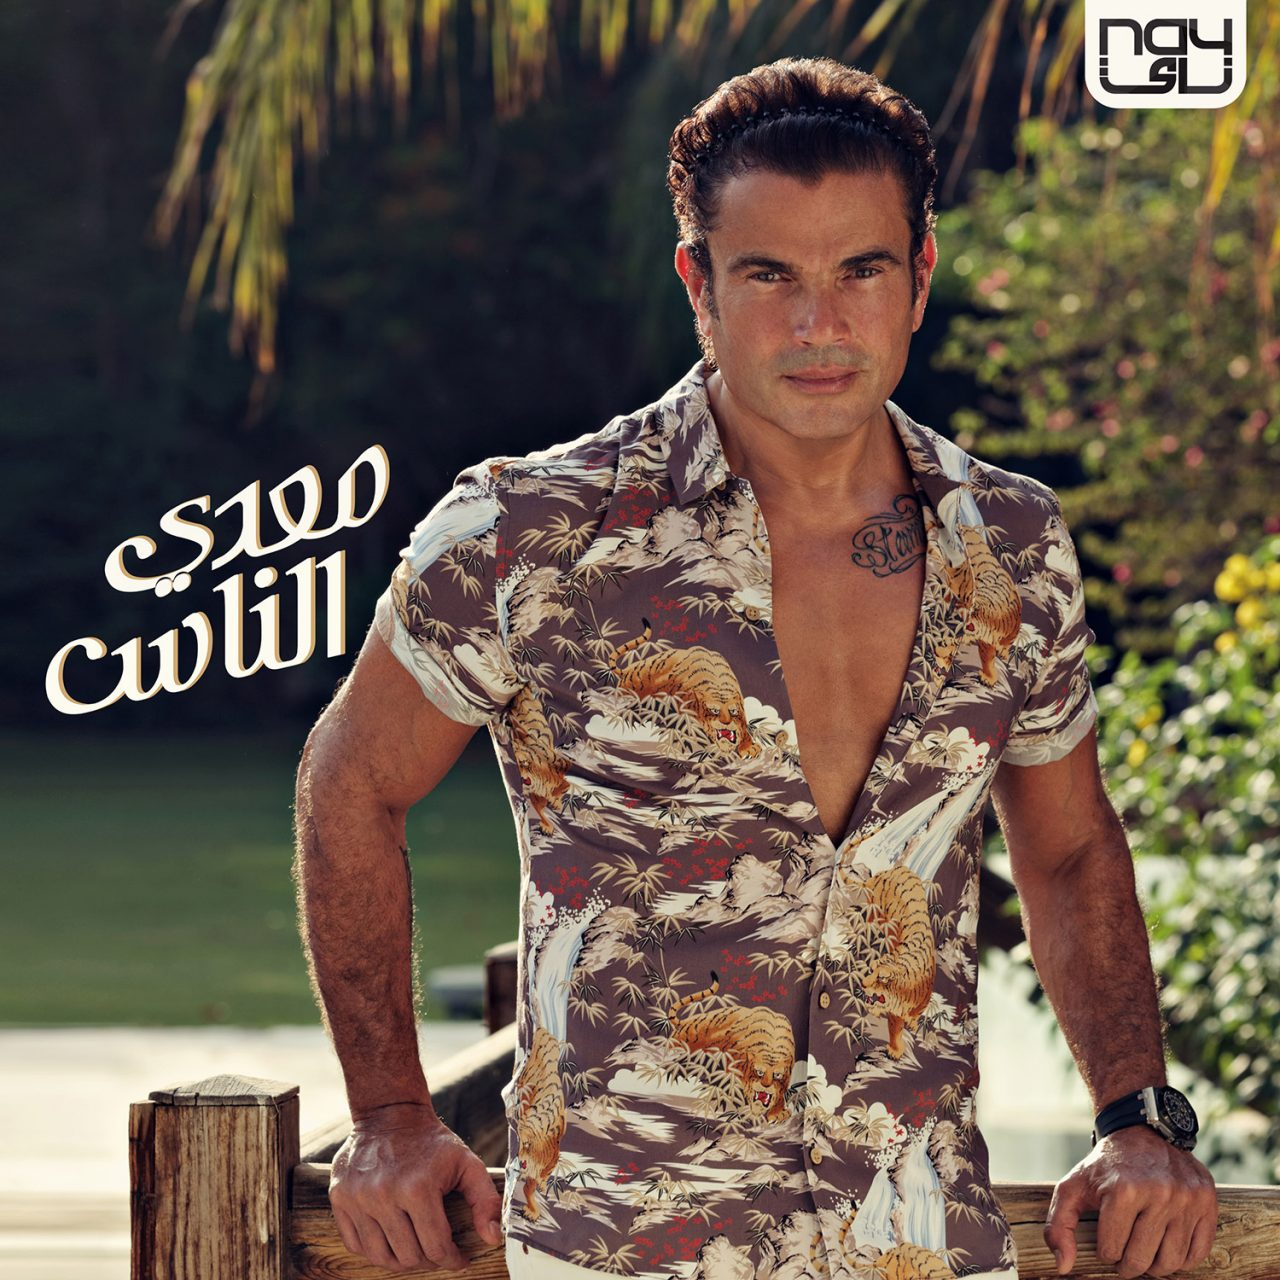 Meaddy El Nas Album, Amr Diab - 2017